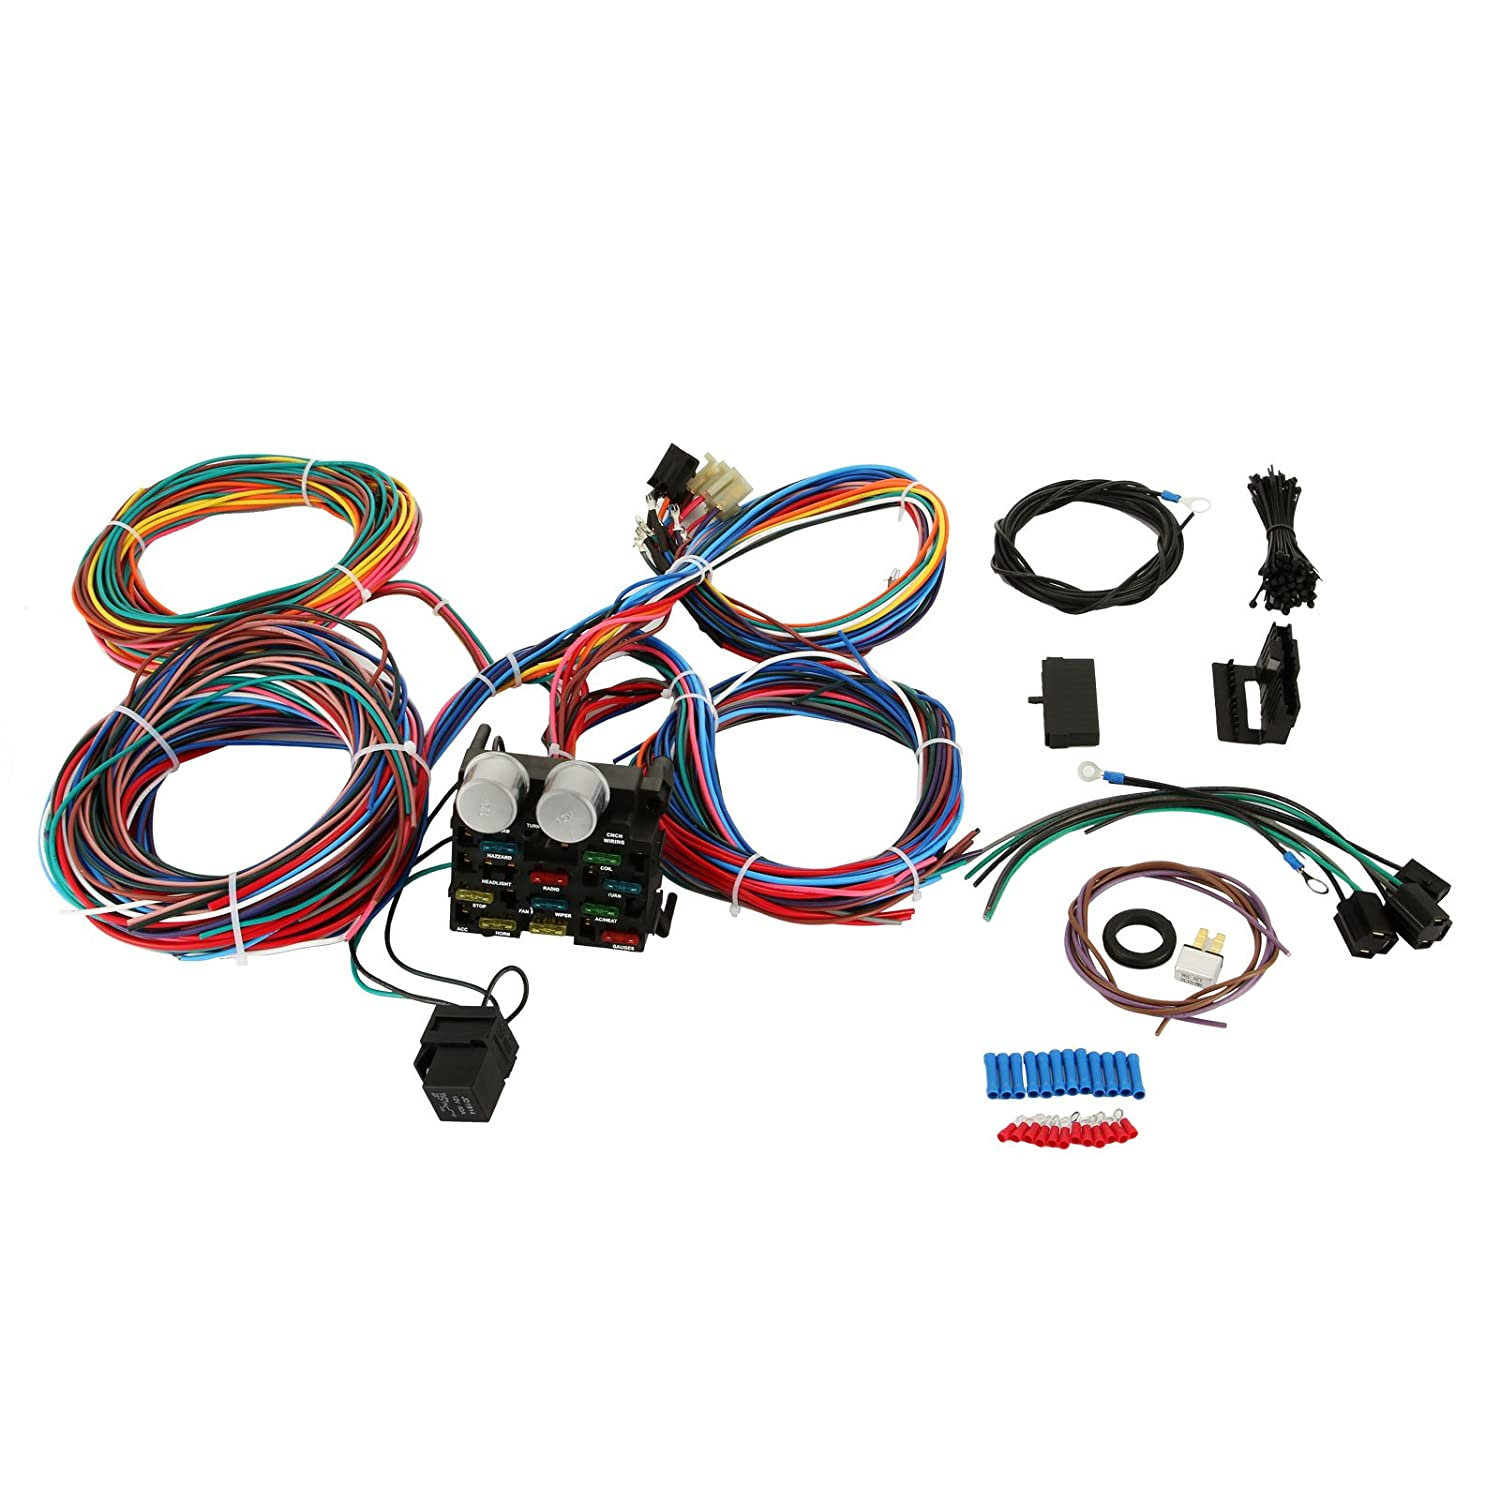 Mophorn Wiring Harness Kit 12 Circuit Hot Rod Universal Classic Car Colr Diagram Small Sample Muscle Street Xl Wires Automotive